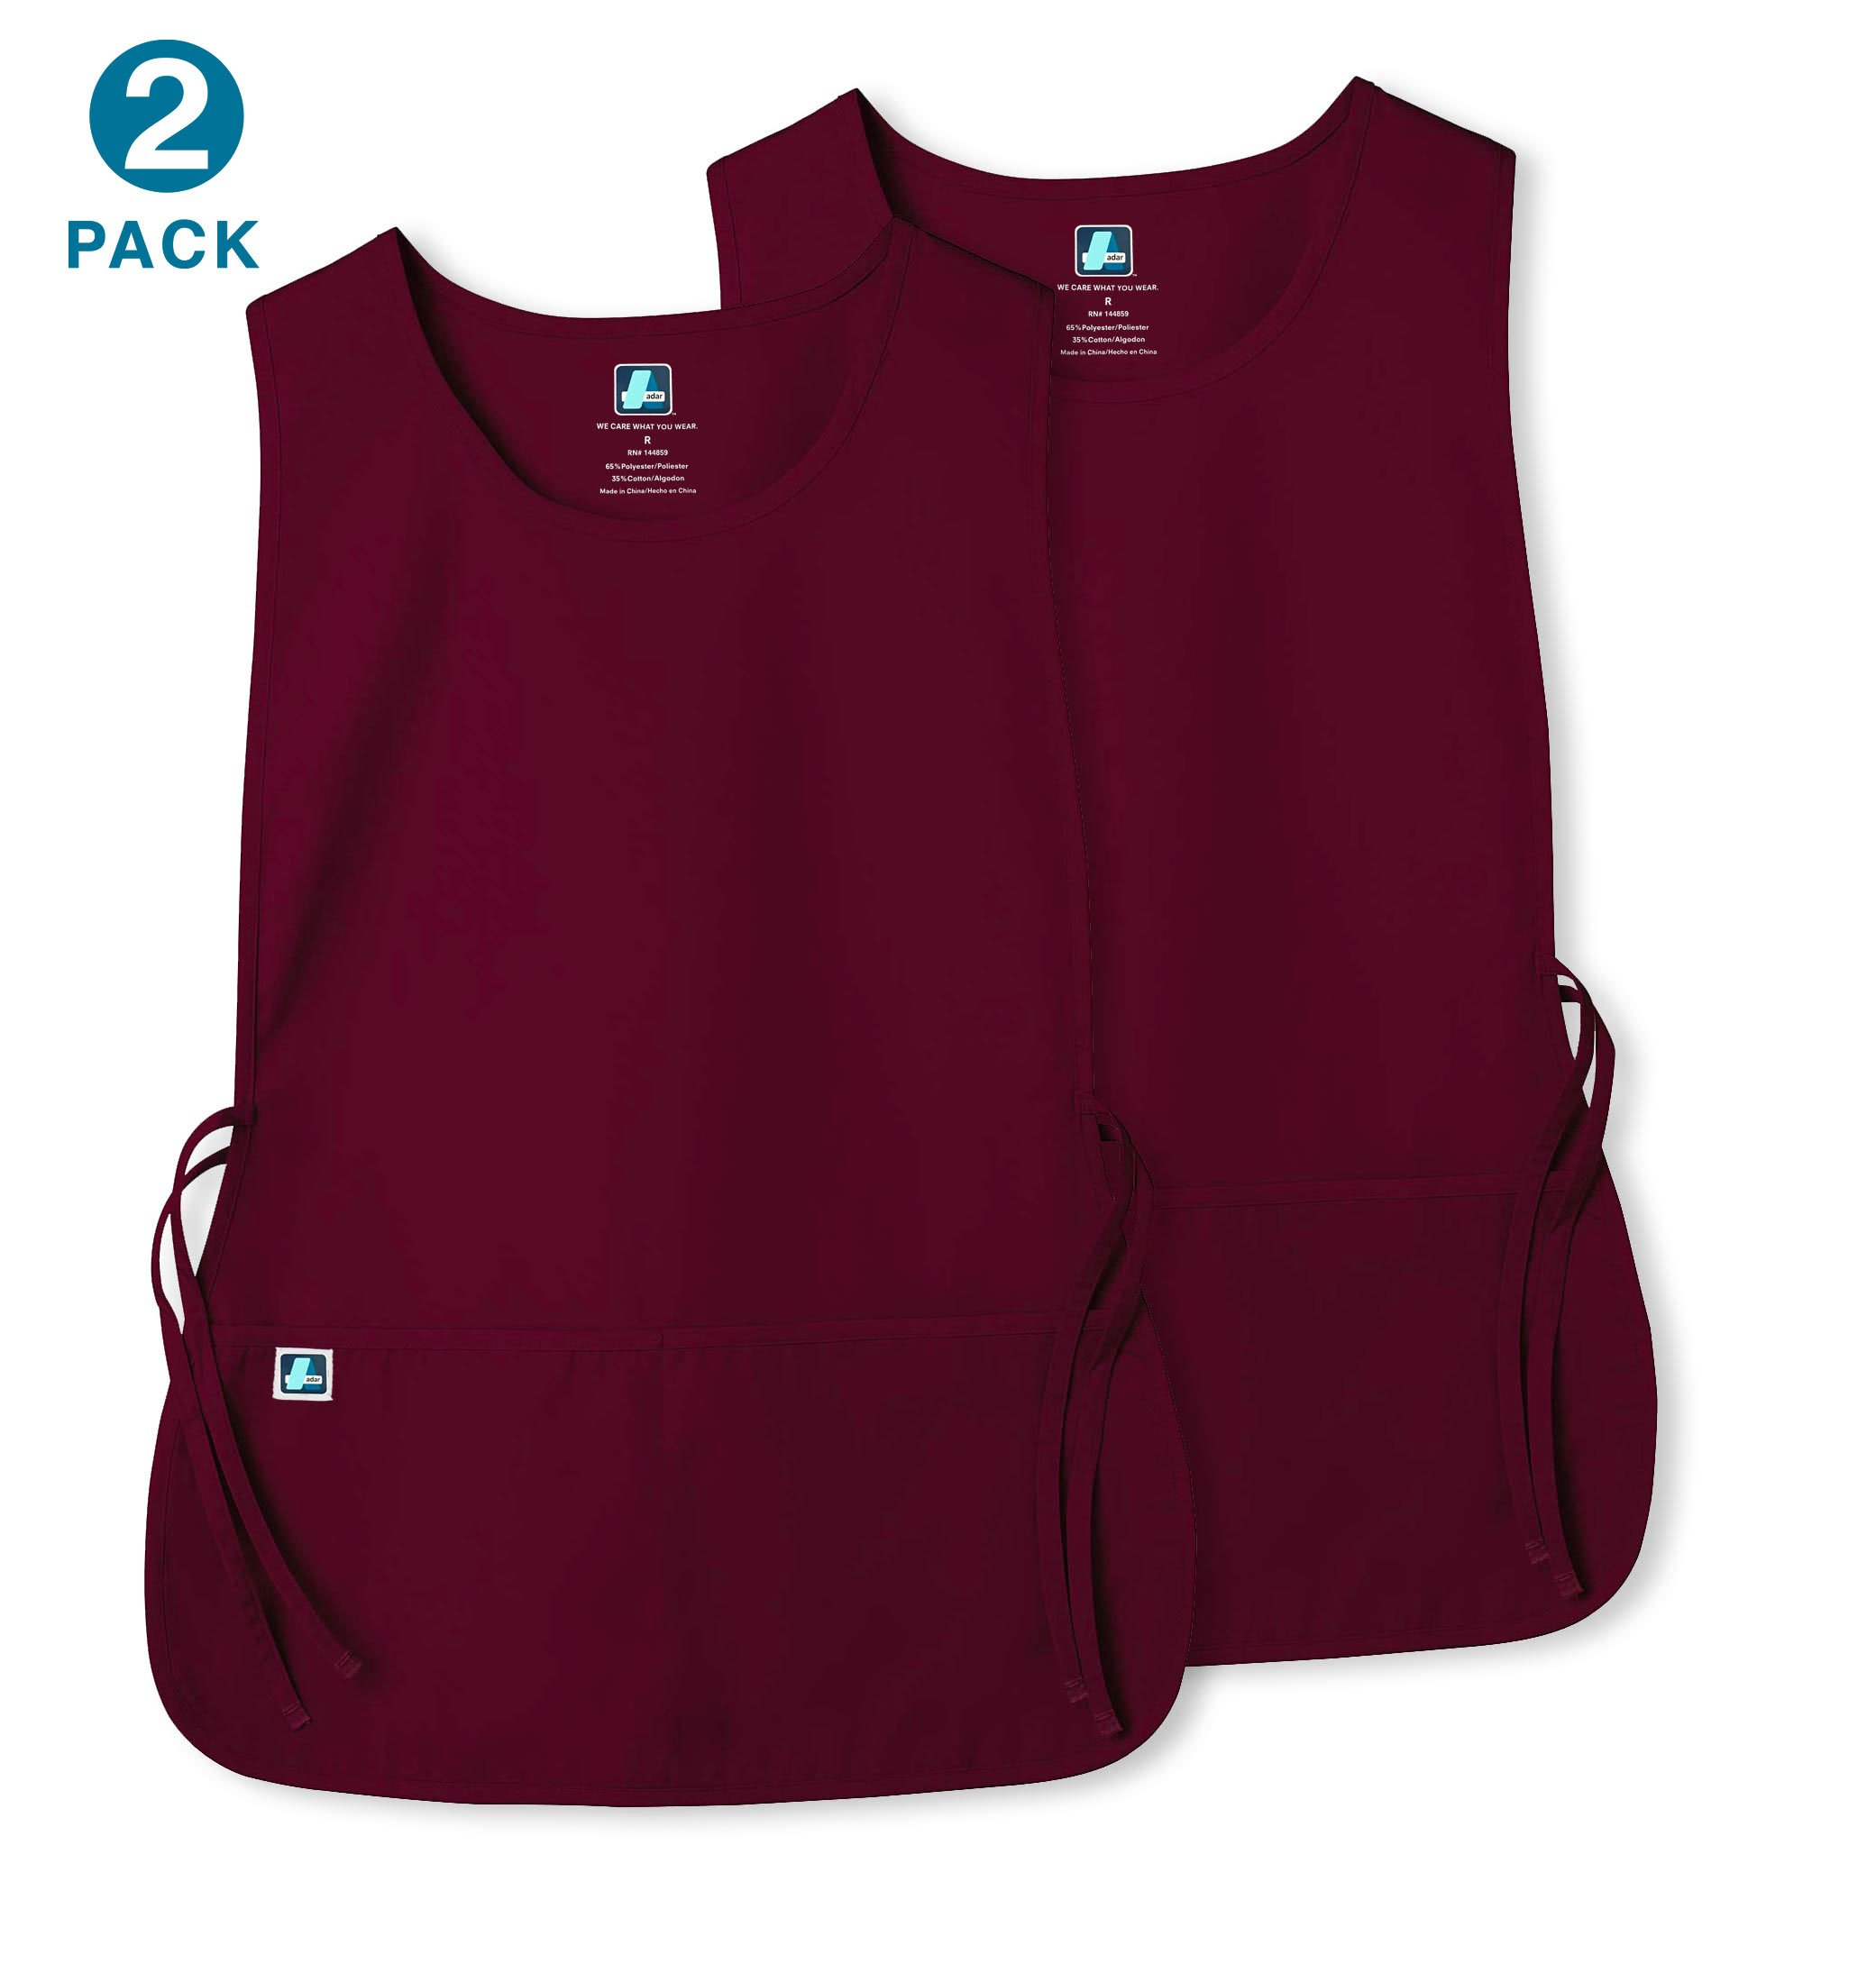 Unisex Cobbler Apron with 2 Pocket/Adjustable Ties - Available in 30 colors (2 Pack) - 7022 - Burgundy - X